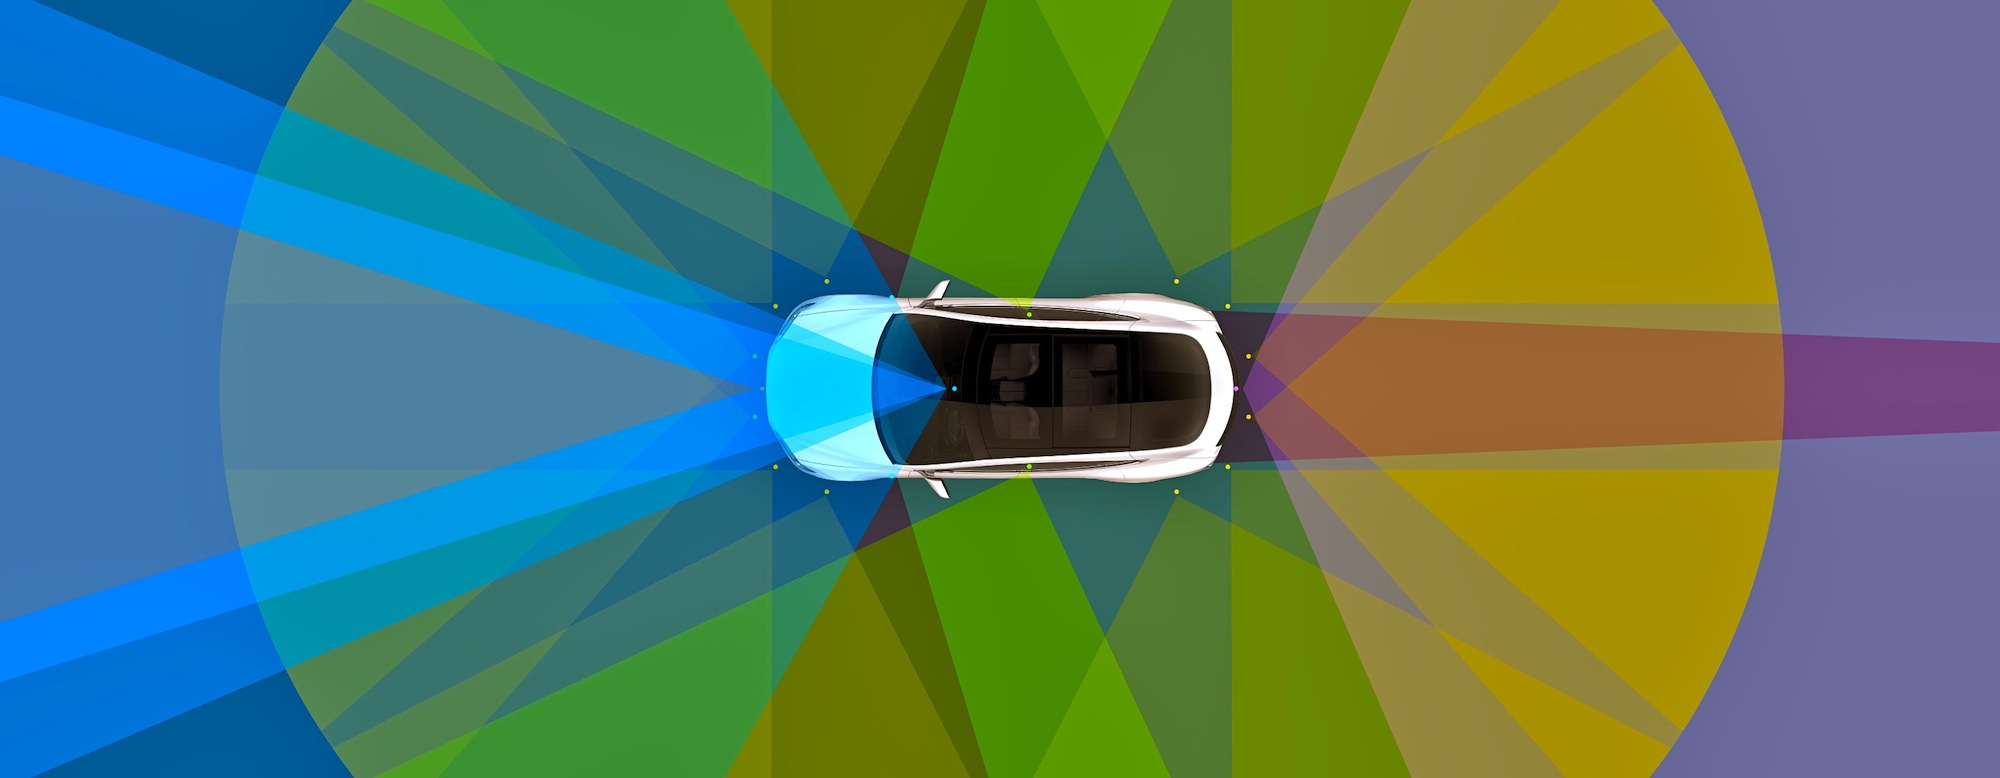 Tesla Autopilot: Self-Driving Servant Or Assisted Suicide?